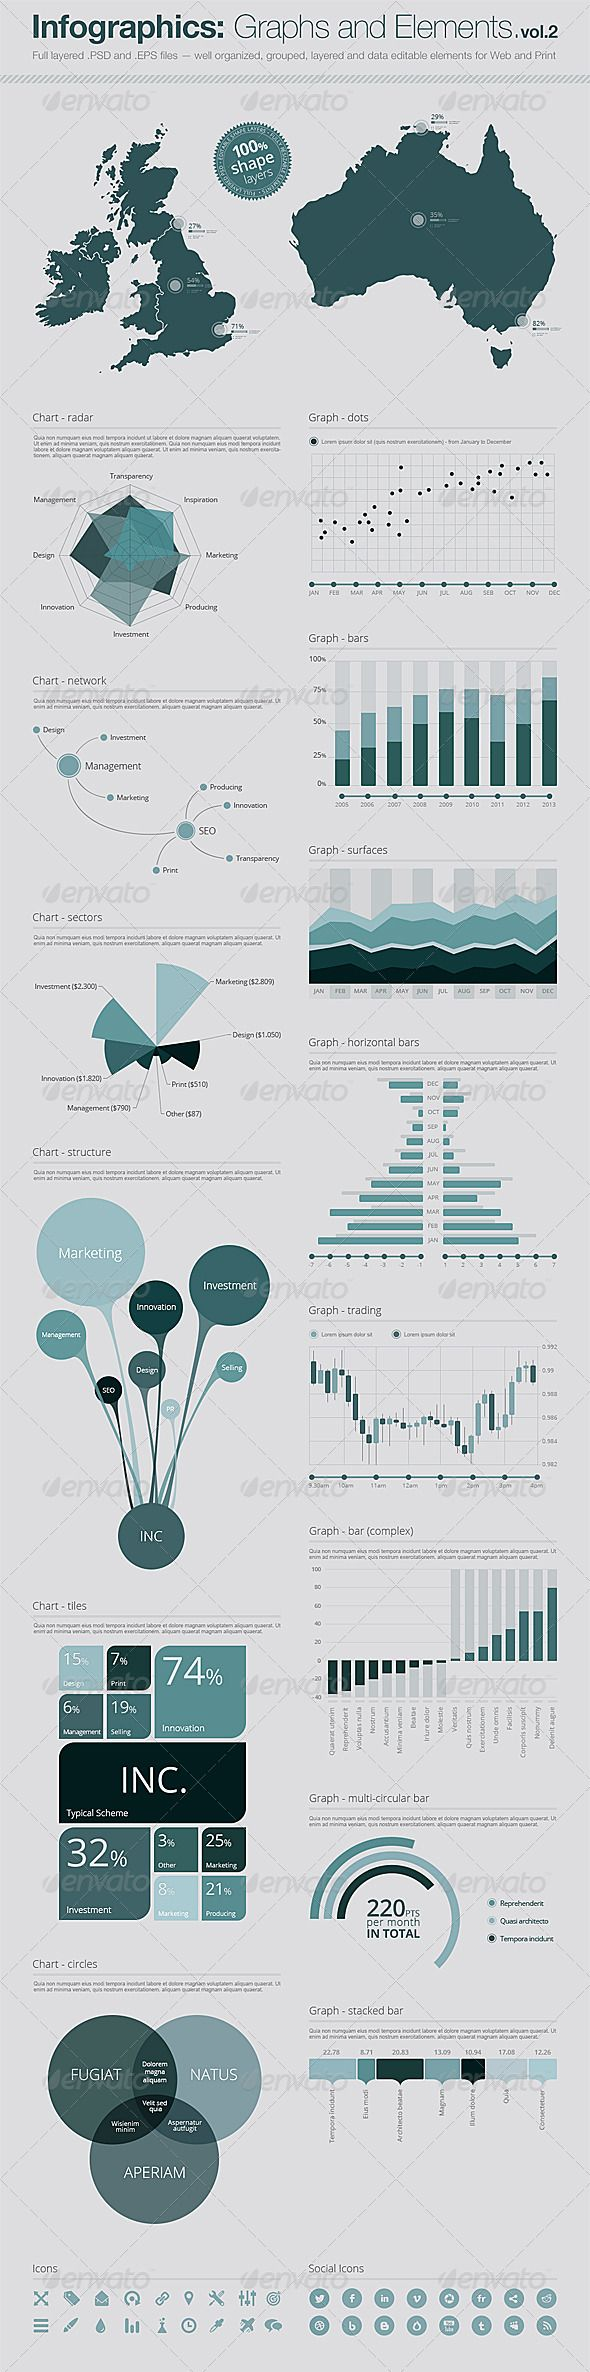 Infographics: Vector Graphs and Elements Vol.2 Everything is resizable! You can easily modify shapes and change colors as you like. It suits to website designs and printed materials with high resolution too. http://startupstacks.com/infographics/infographics-vector-graphs-elements-vol-2.html - free download